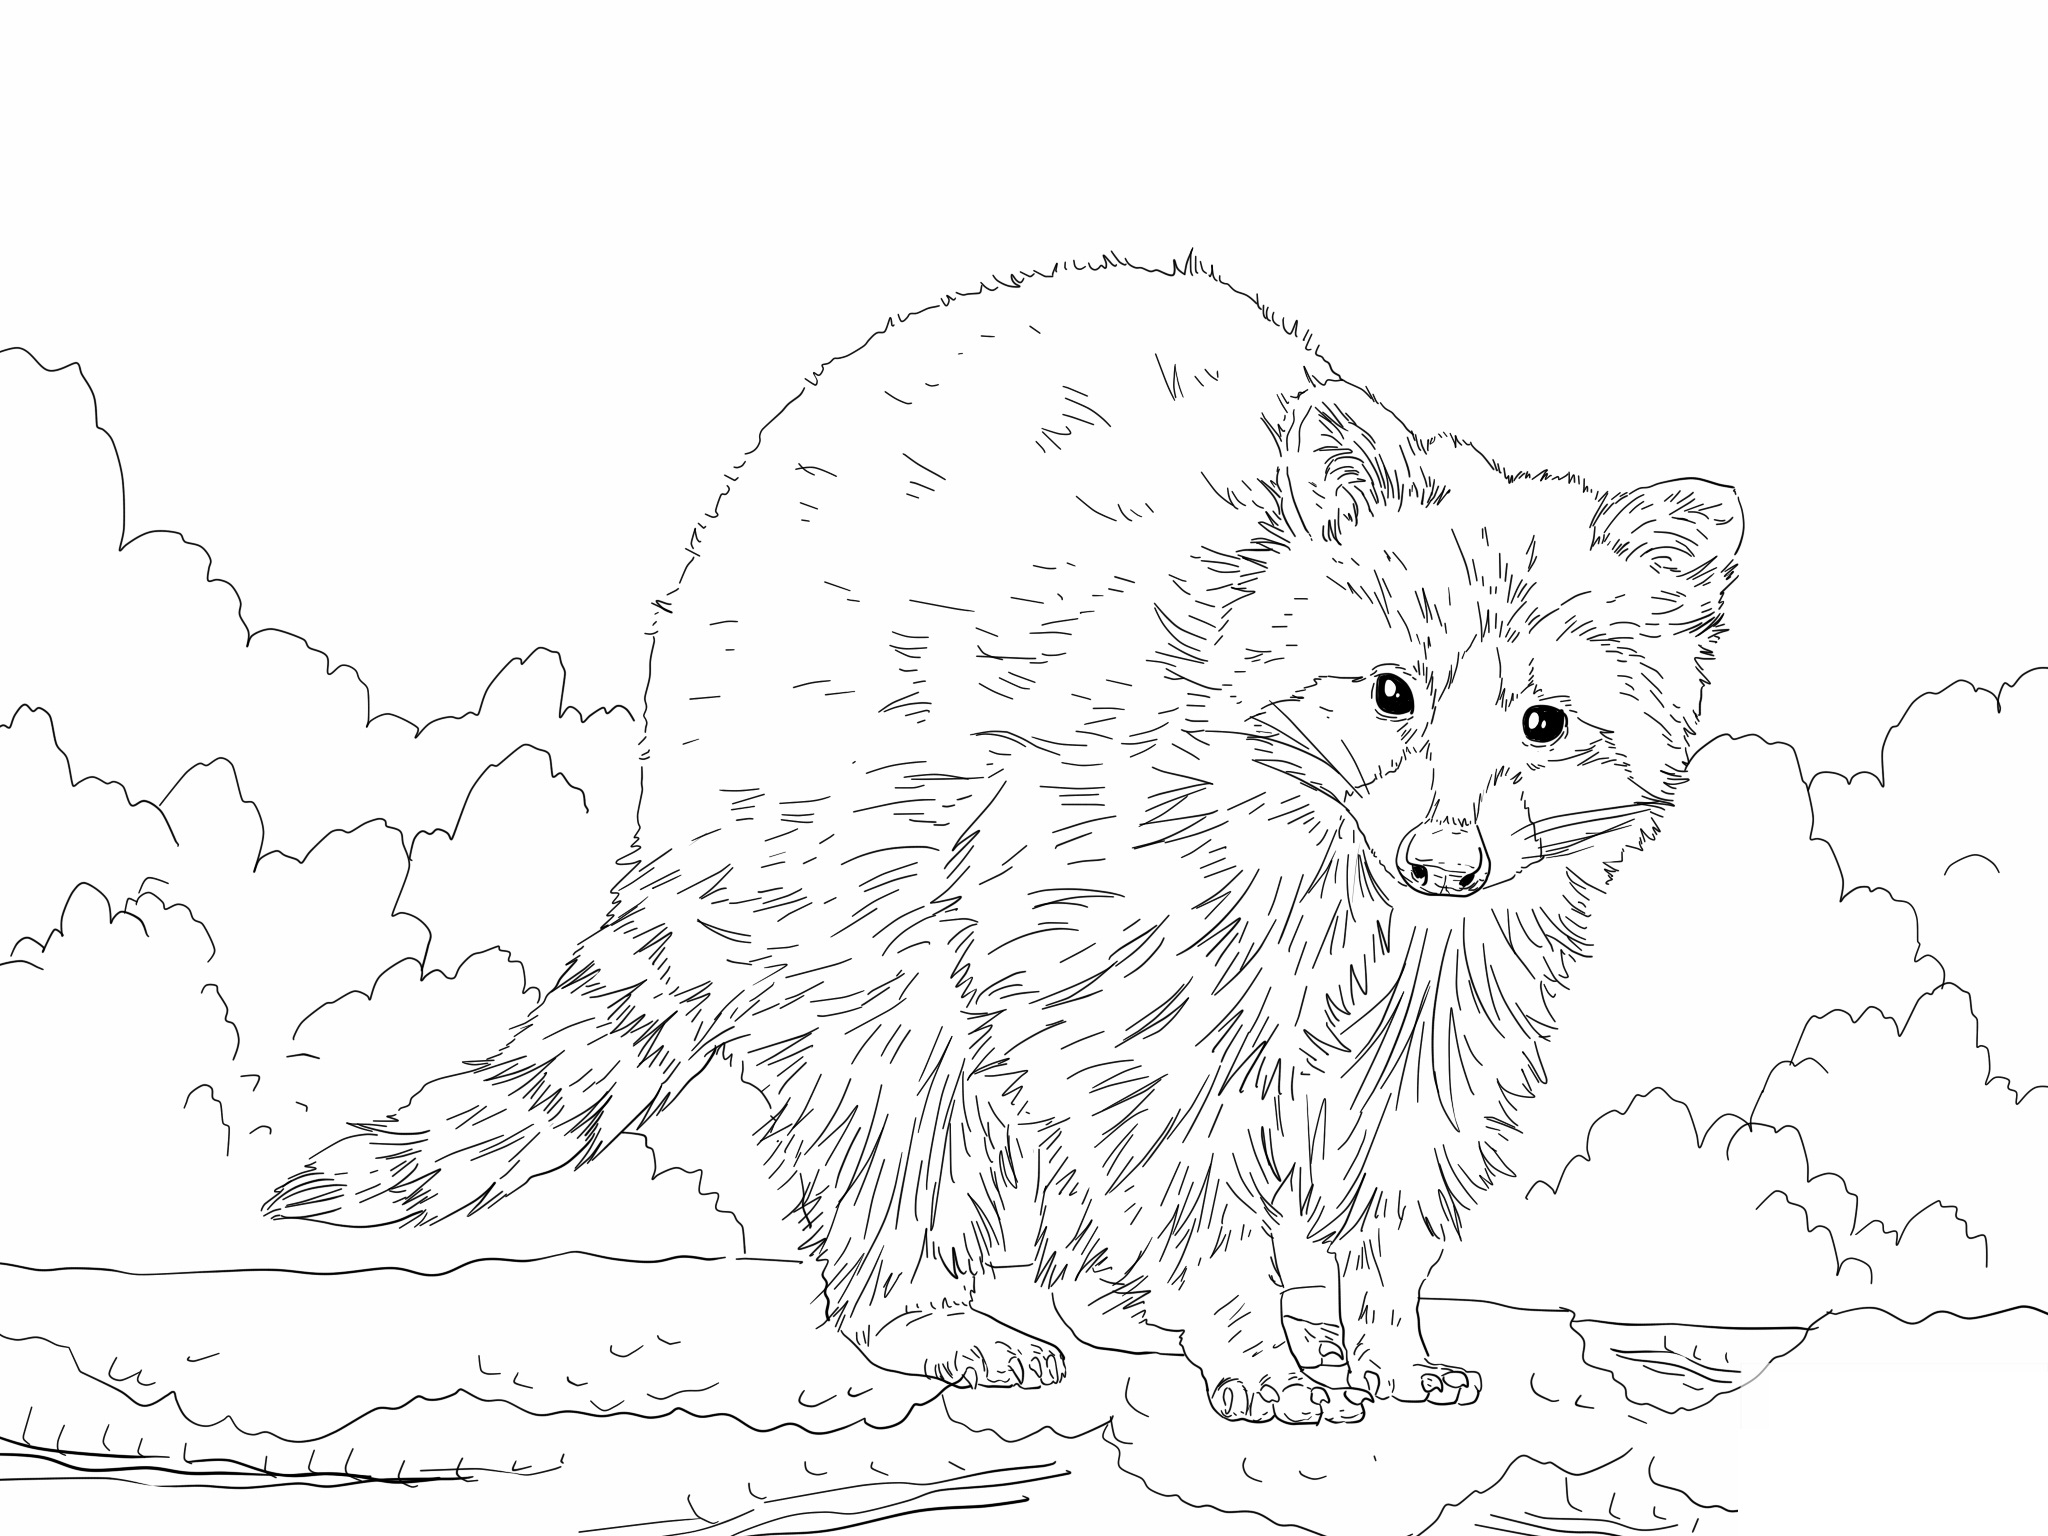 raccoon coloring pictures free printable raccoon coloring pages for kids raccoon coloring pictures 1 1